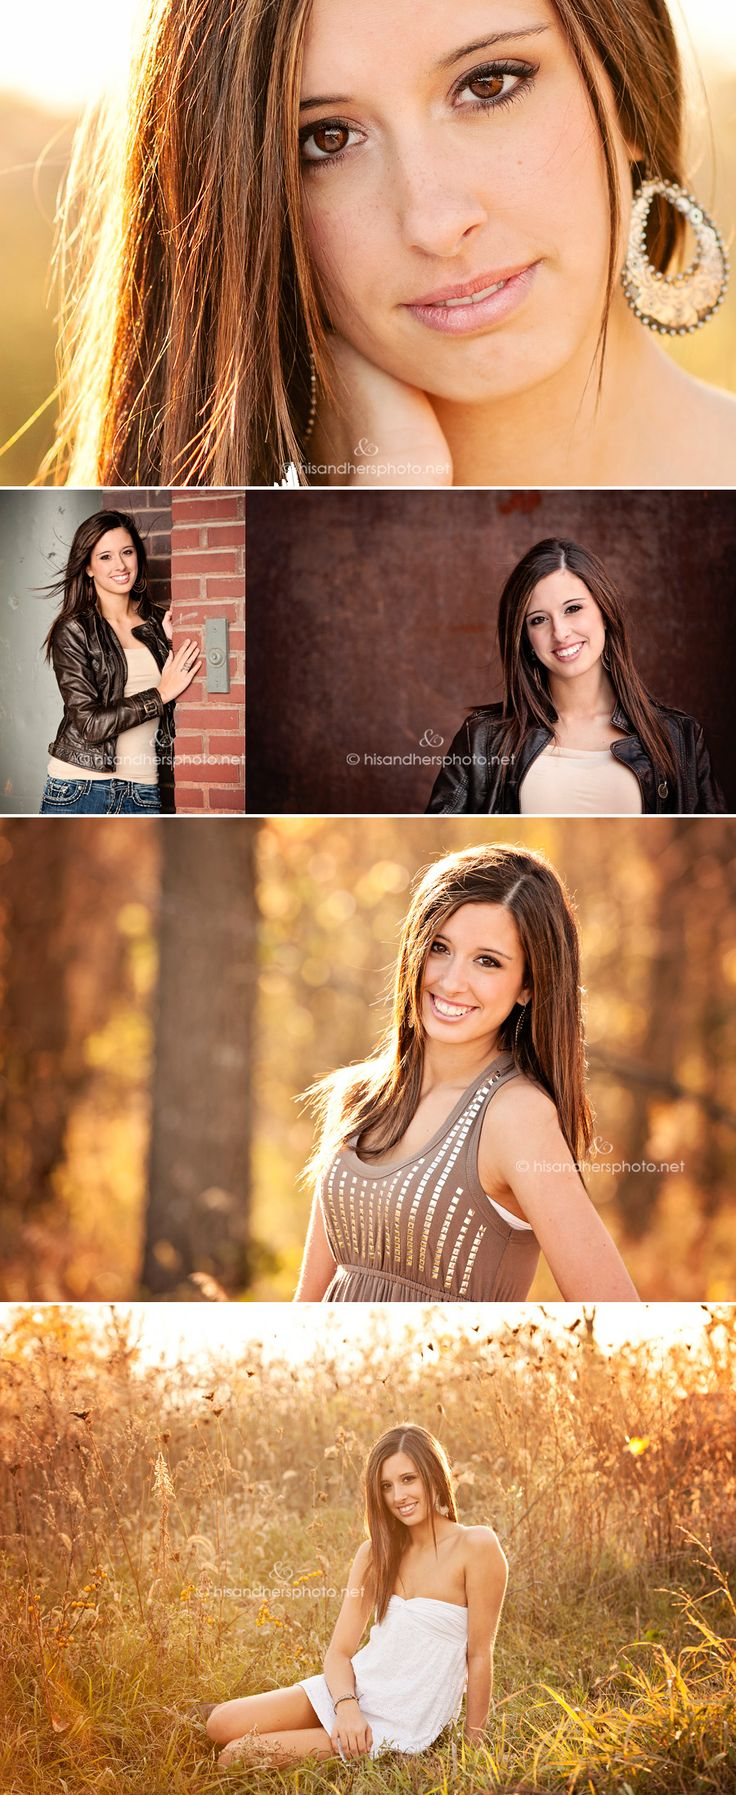 Pics: Pictures Ideas, Boys Senior Pictures, =Senior Portraits, Senior Years, Photo Portraits Natural Lights, Senior Photography, Senior Pics, Close Up Senior Pictures, Senior Girls